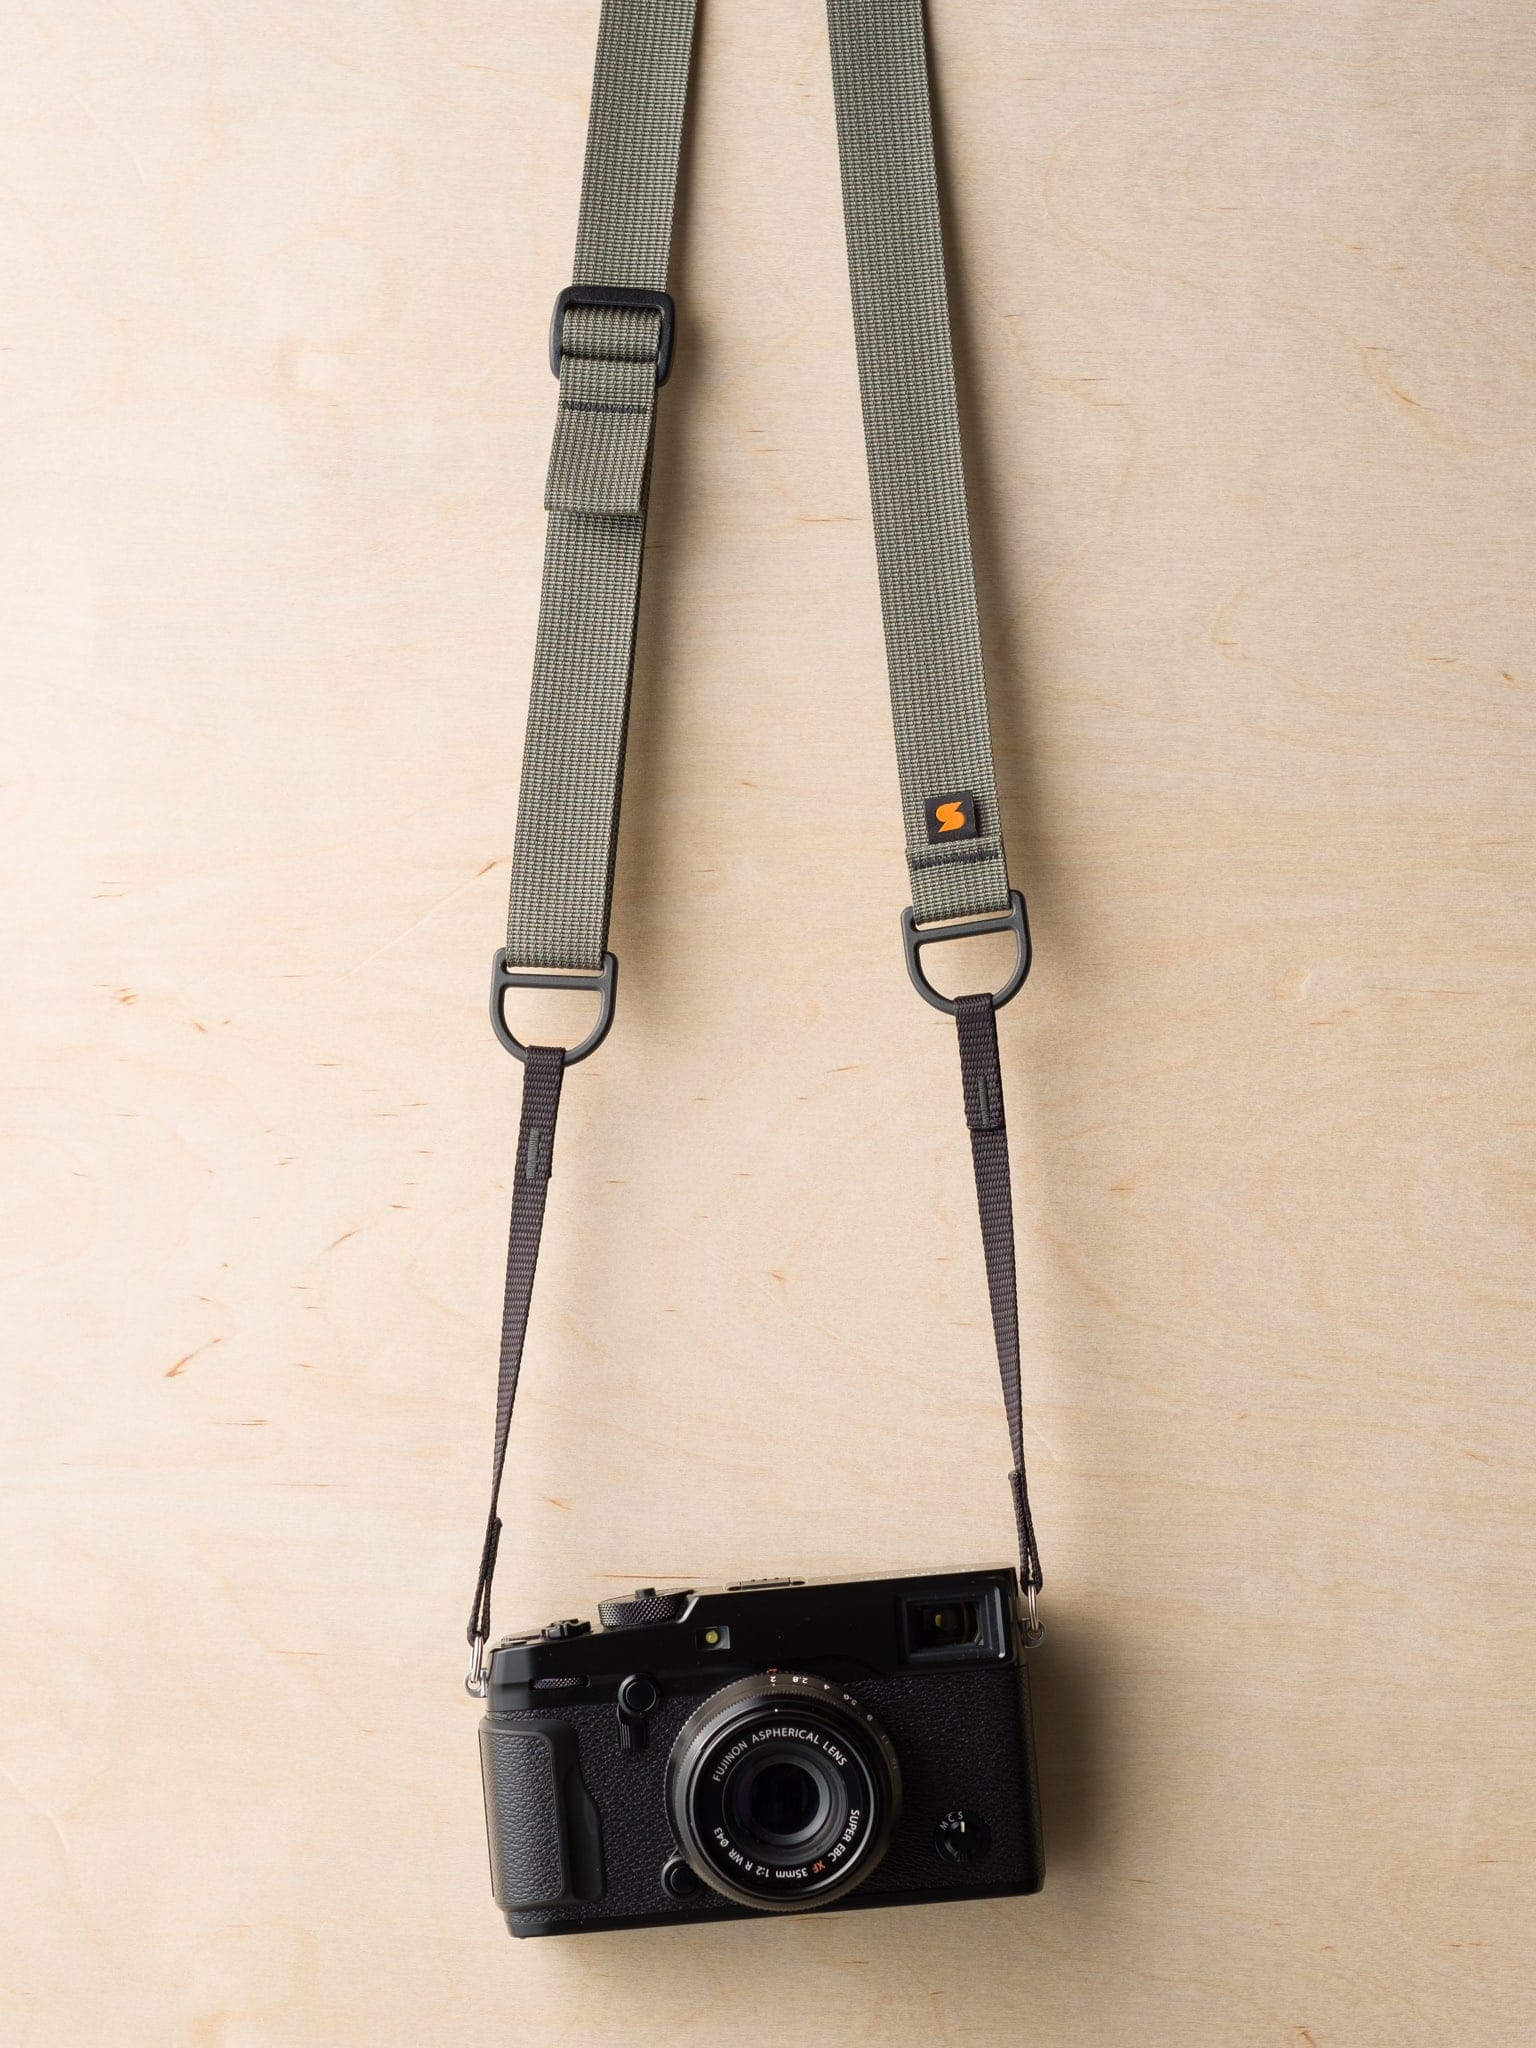 Cameras & Photo Confident Leica Binocular Strap Latest Fashion Binocular Cases & Accessories